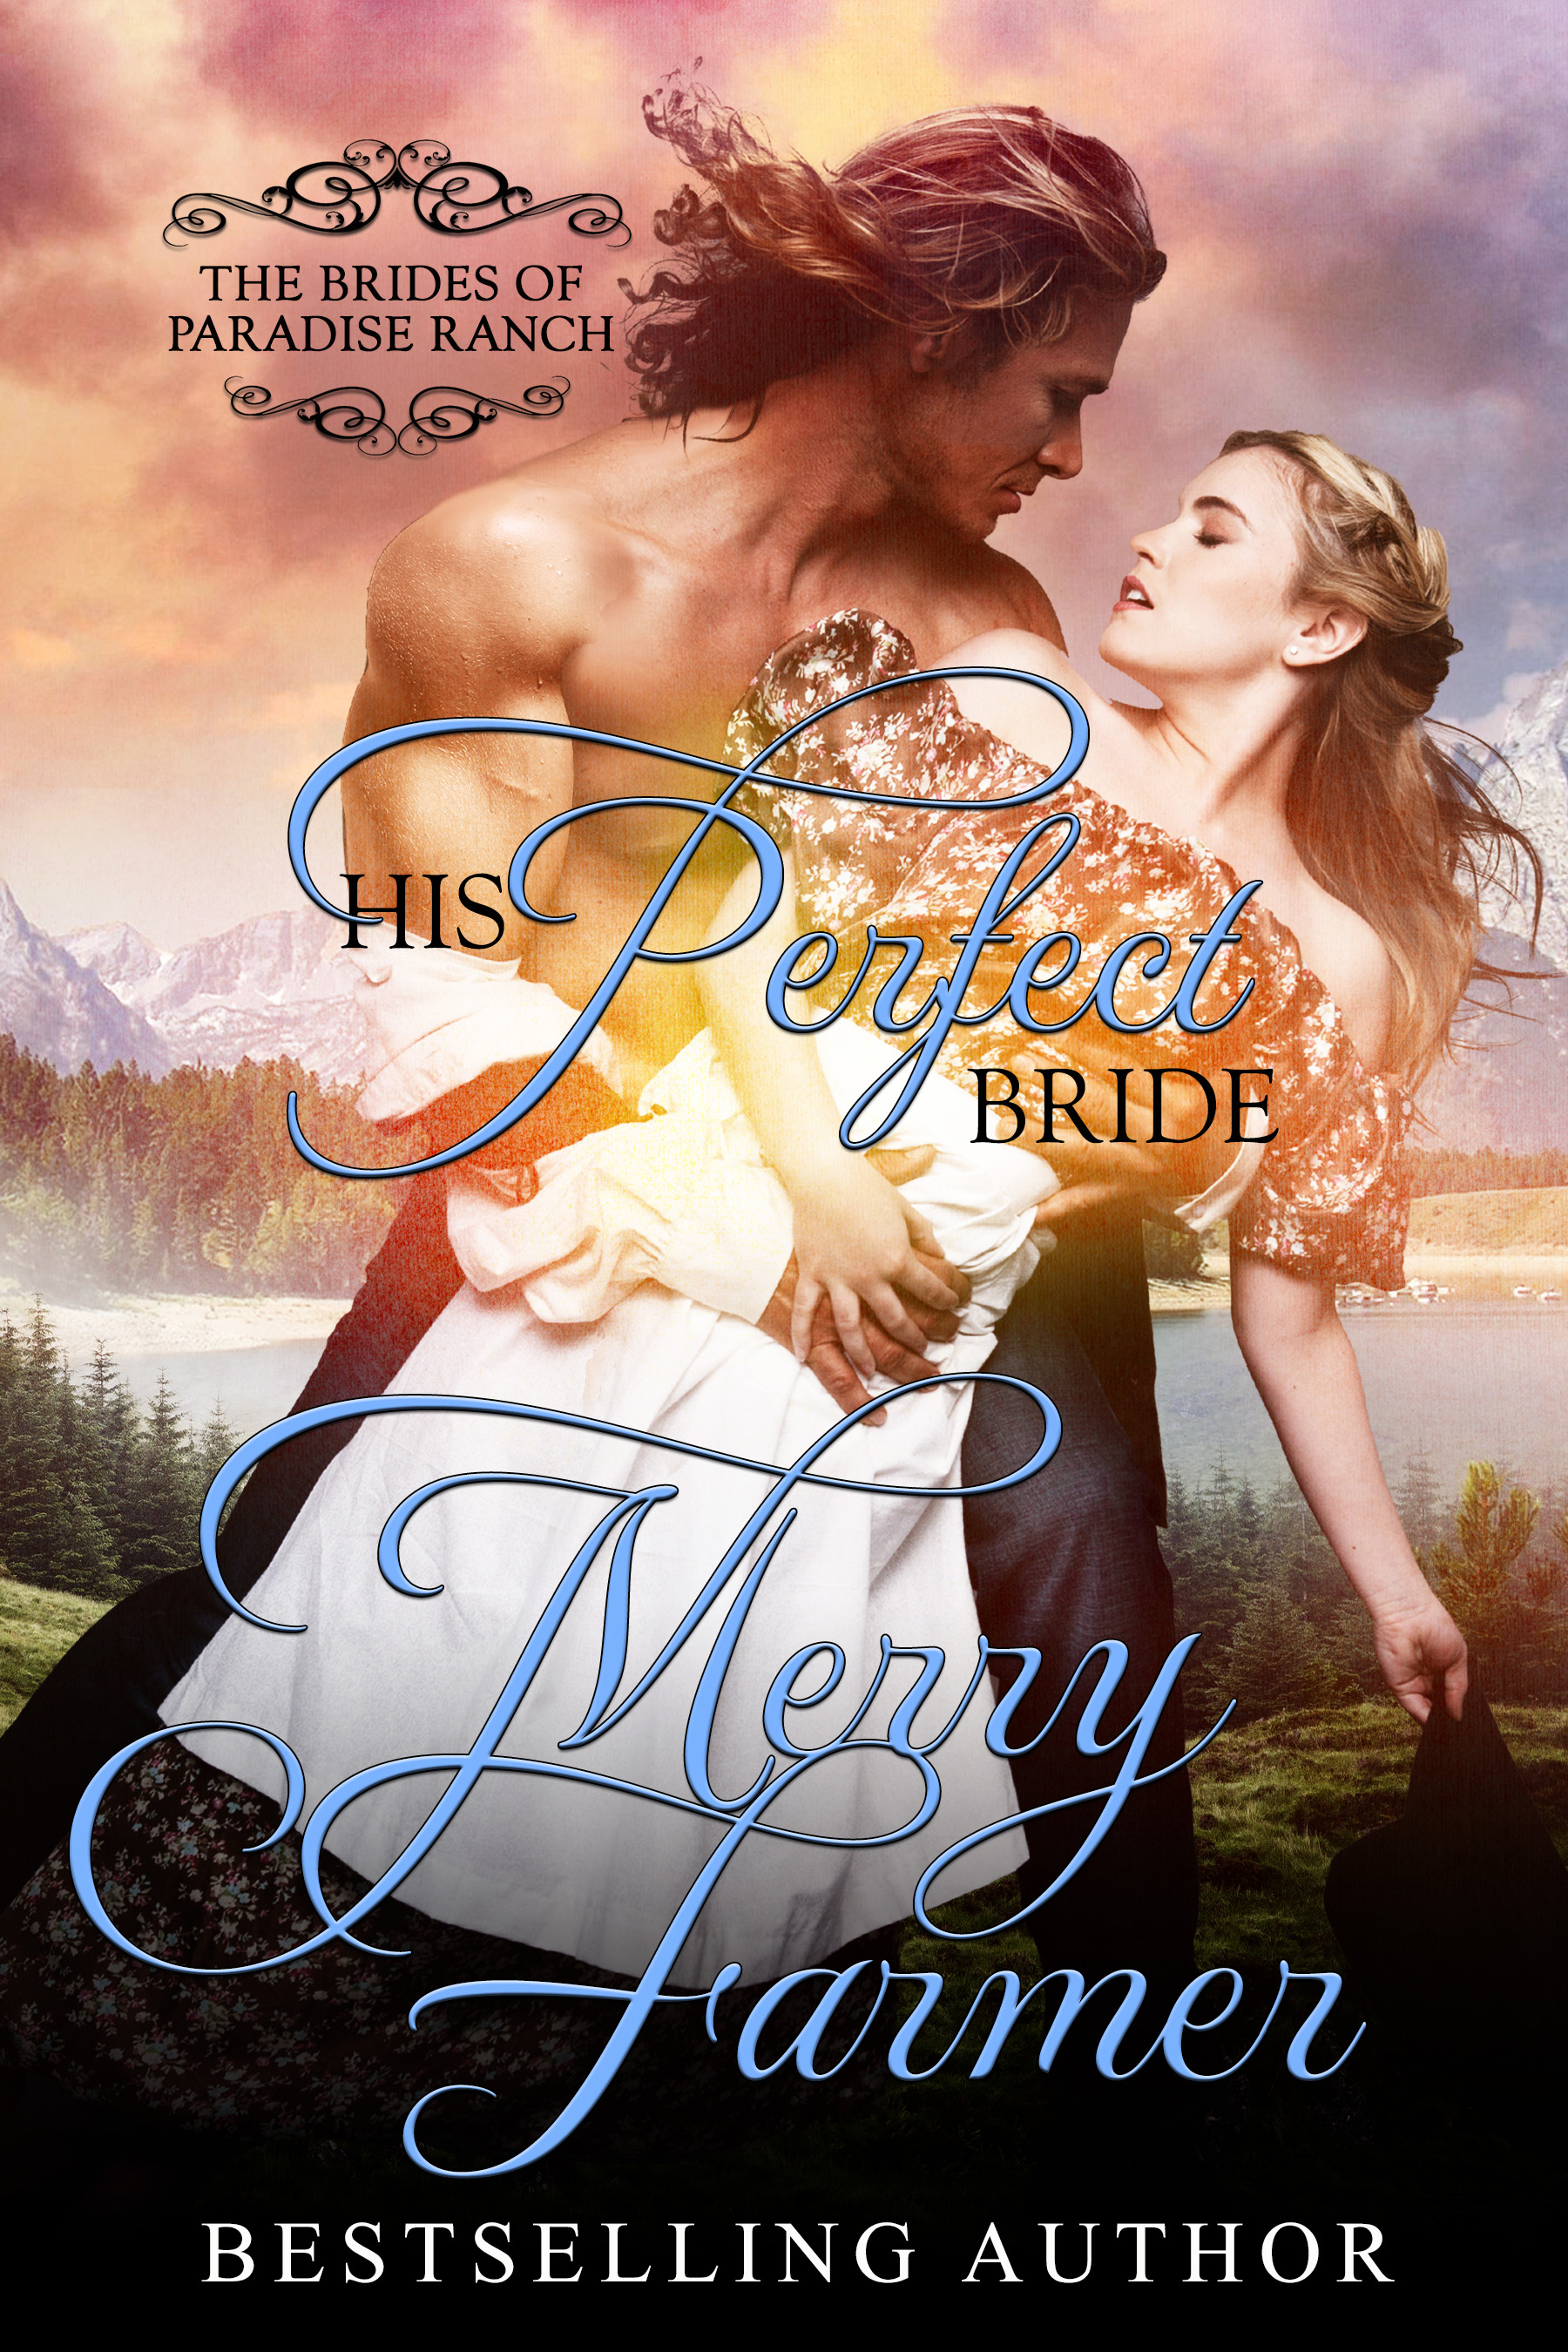 """His Perfect Bride (Book 1) - For Corva Collier, life as a mail-order bride in the quirky town of Haskell, Wyoming is her last chance for escape. She longs for a peaceful life away from the darkness of her past where she can create the paintings that are close to her heart, and where she hopes she can grow to love her husband.But how do you love a man who was persuaded to marry you against his will?Franklin Haskell never planned to marry. What woman would want a man who was crippled due to his own arrogance? But when he is offered the chance to help a woman in crisis, he agrees to wed. Corva is so much more than he expected, and when a baseball game gives her the chance to shine, he loses his heart.But how do you tell a woman you love her when she deserves so much better?The game of love has never been so hard to play…or so worth winning.PLEASE BE ADVISED: Steam Level = HOTIf you would like to read this story without any """"scenes,"""" check out Corva: The Perfect Bride"""